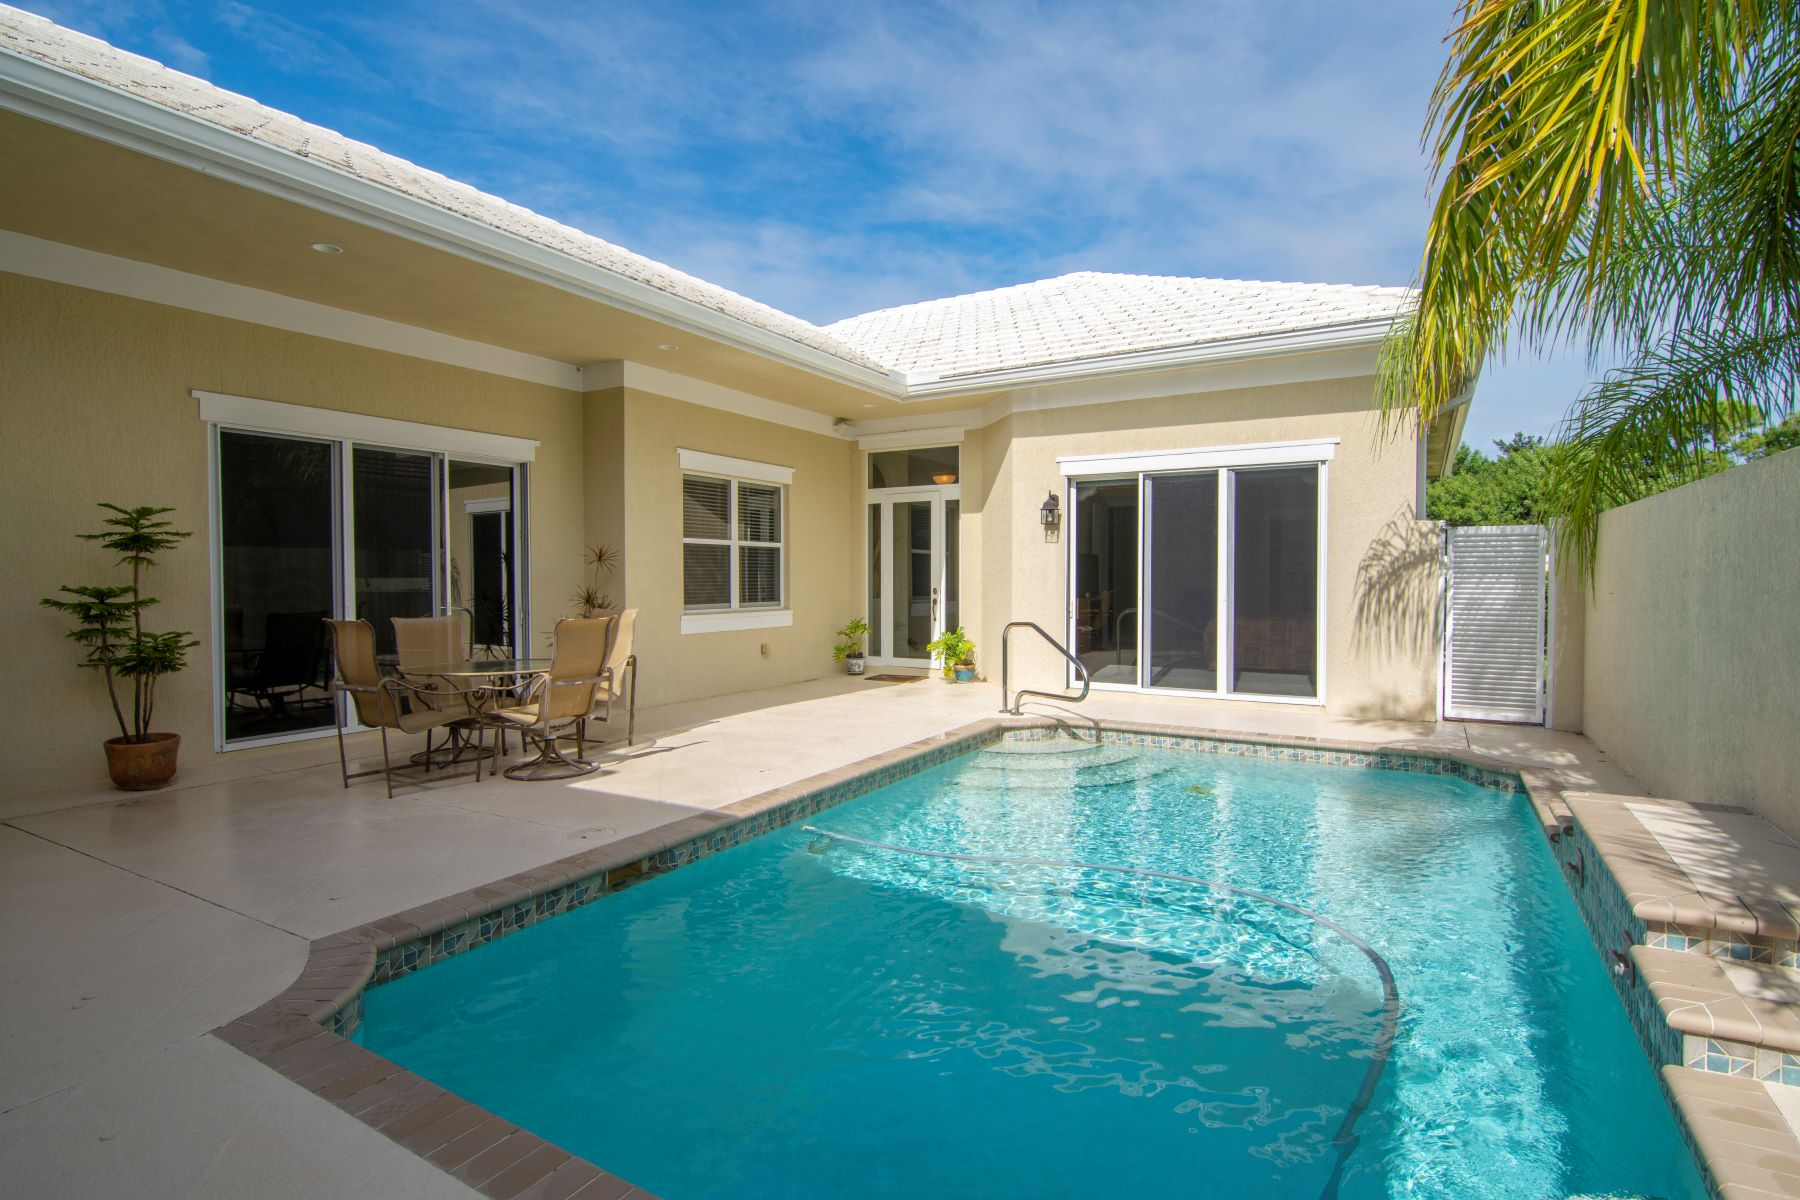 Property for Sale at Courtyard Style Home with Generous Space 1025 Riverwind Circle Vero Beach, Florida 32967 United States